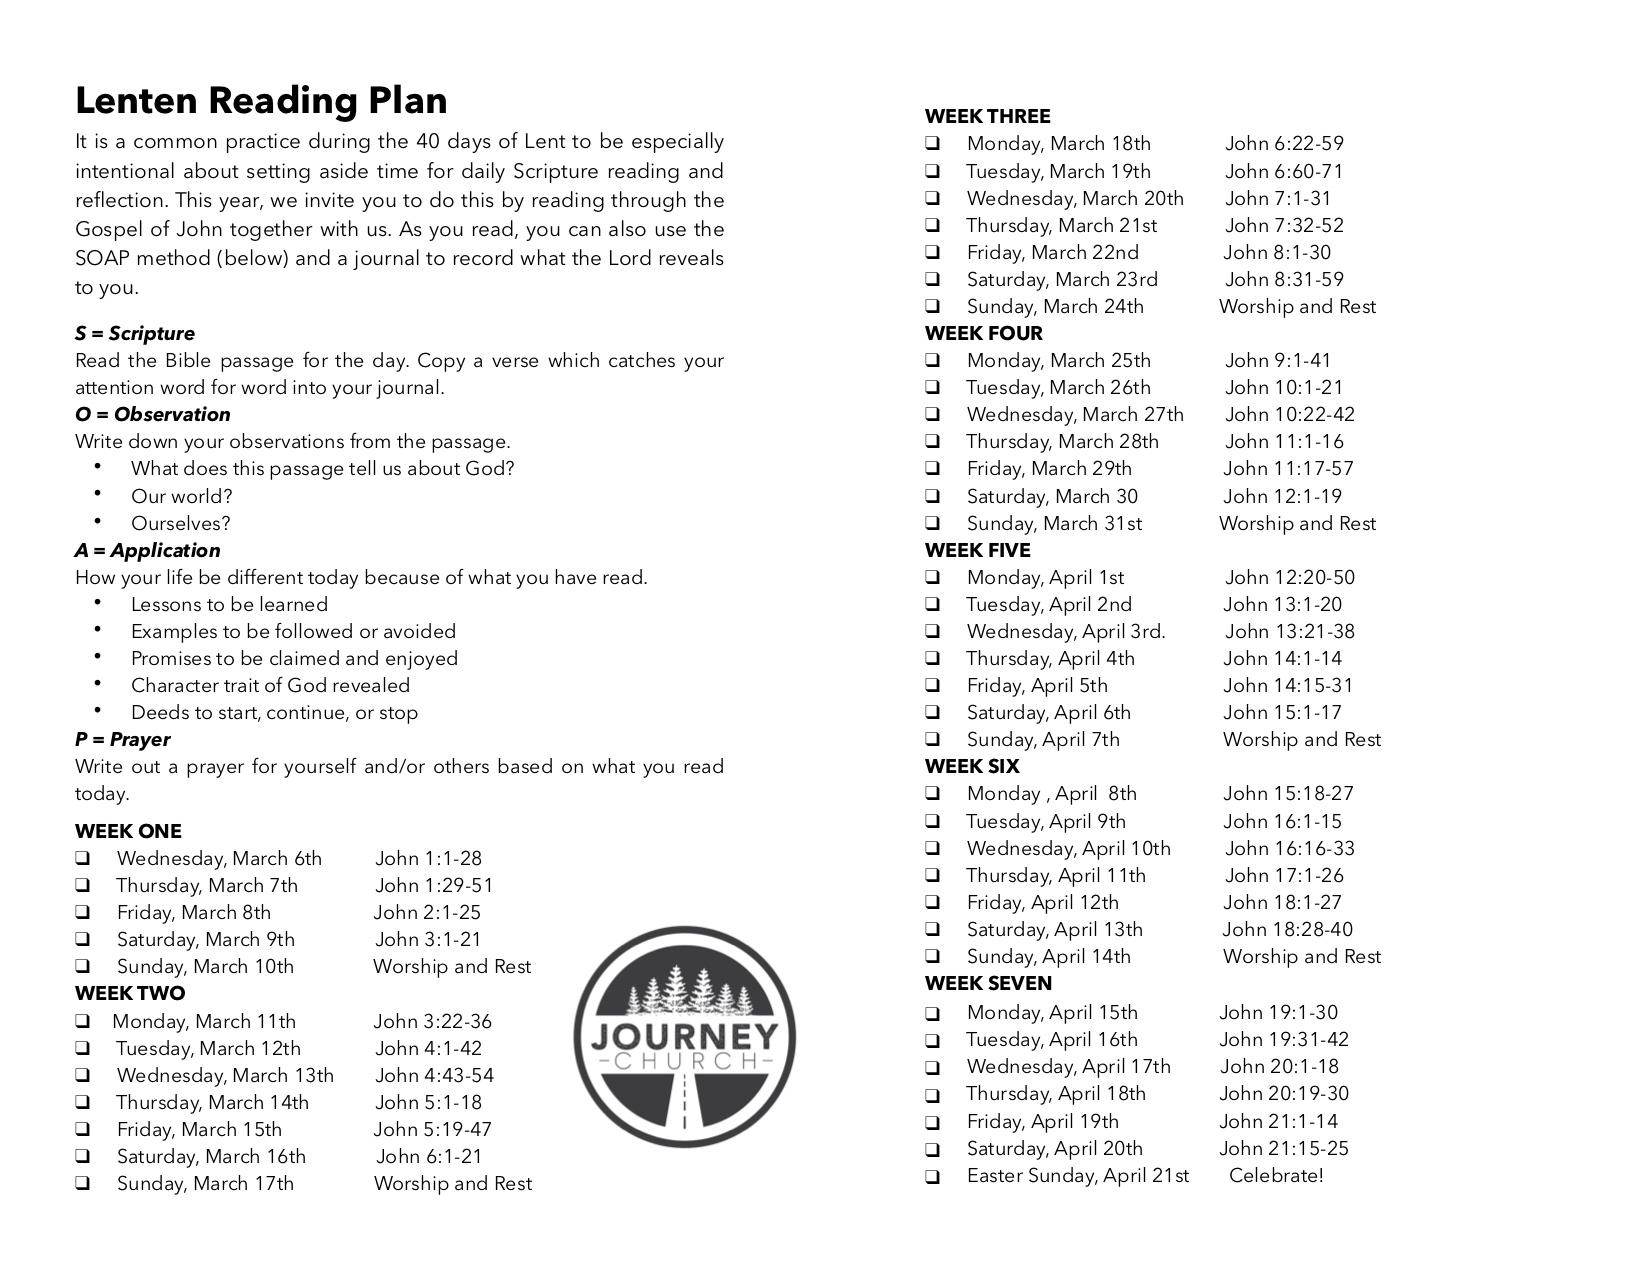 Lent Reading Plan 2019.jpg